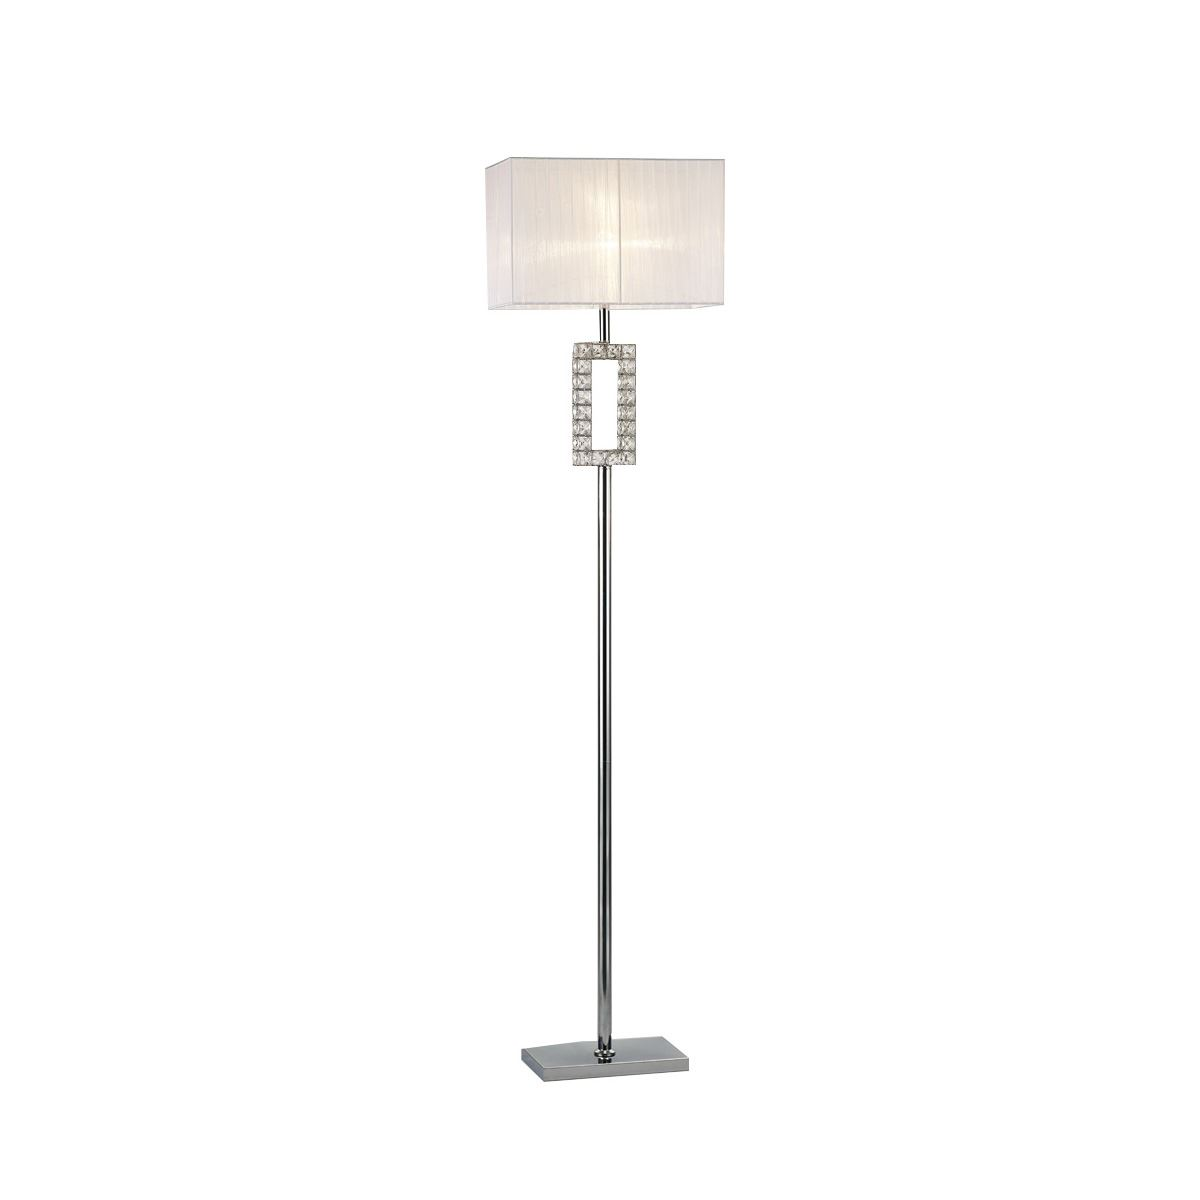 Florence Renctangle Floor Lamp With White Shade 1 Light Polished Chrome/Crystal